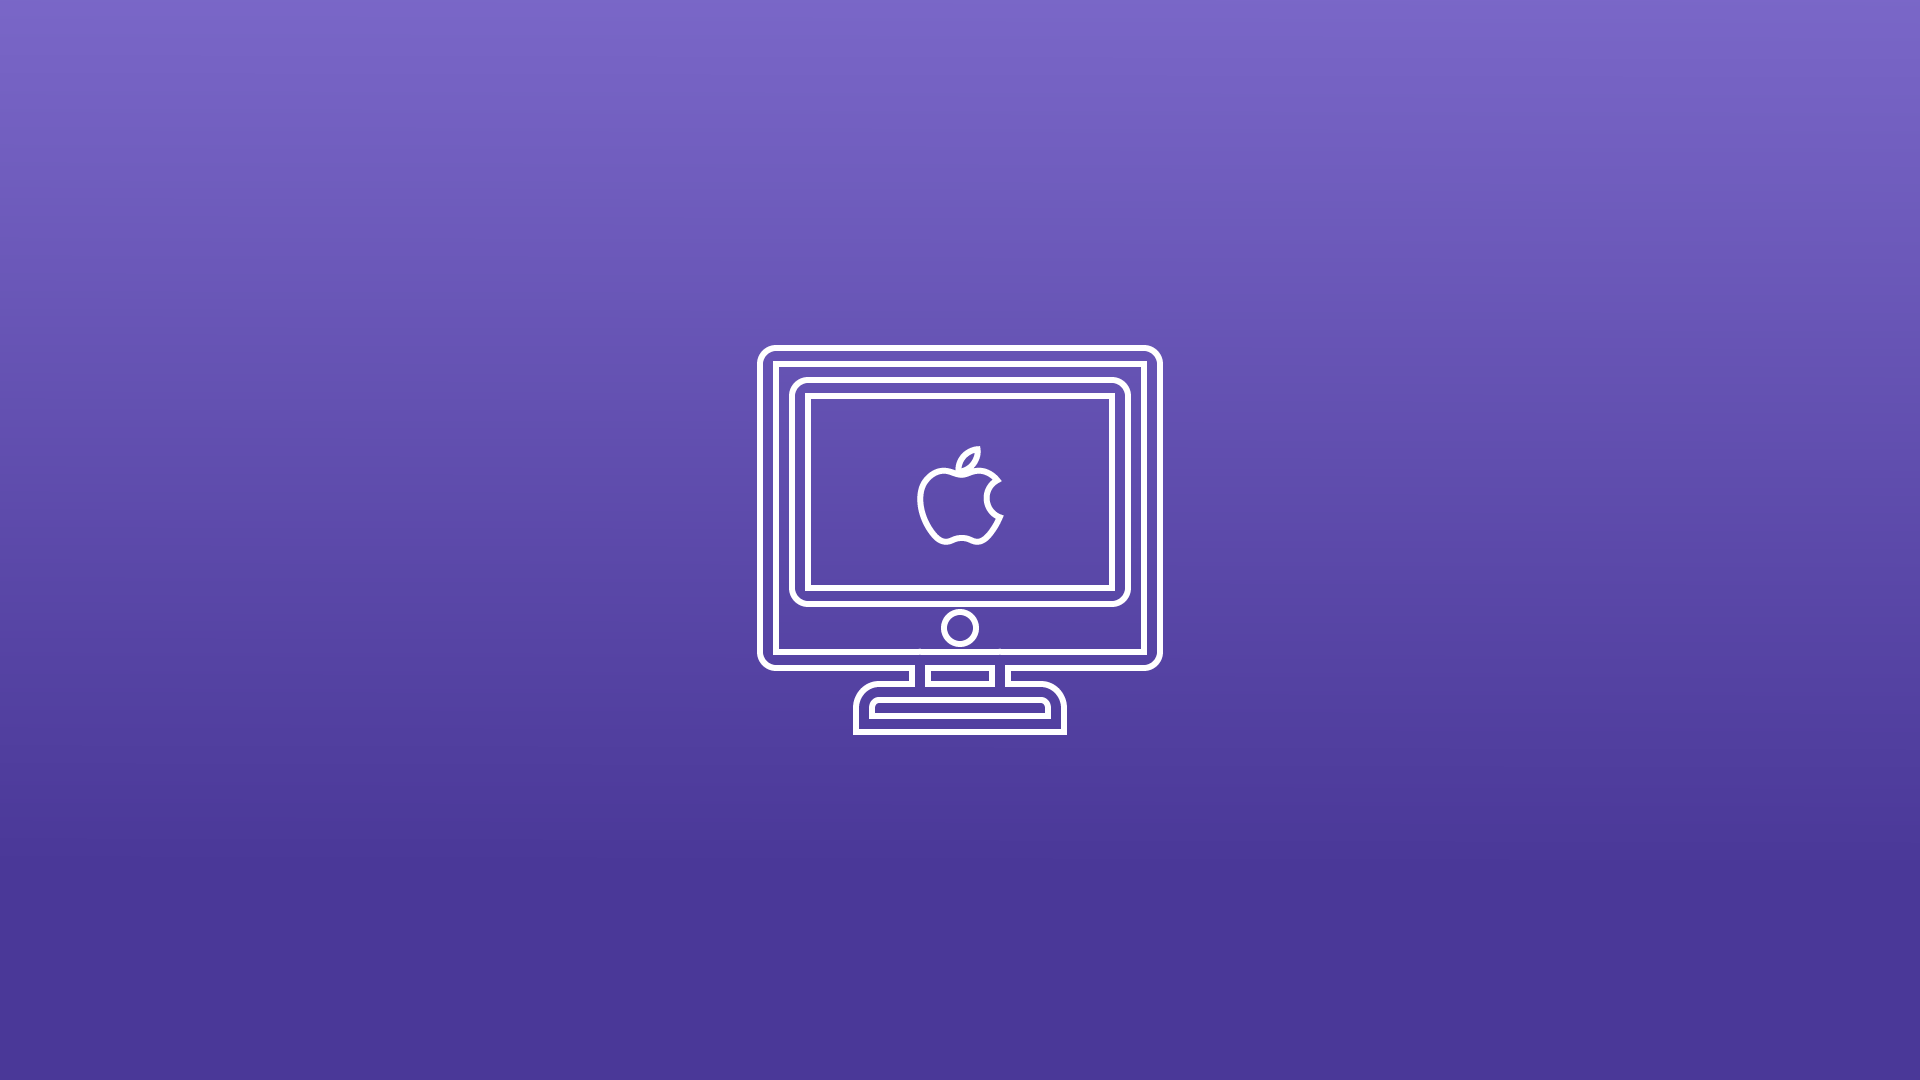 Mac OS X 10.4 (Tiger) - Orientation Training